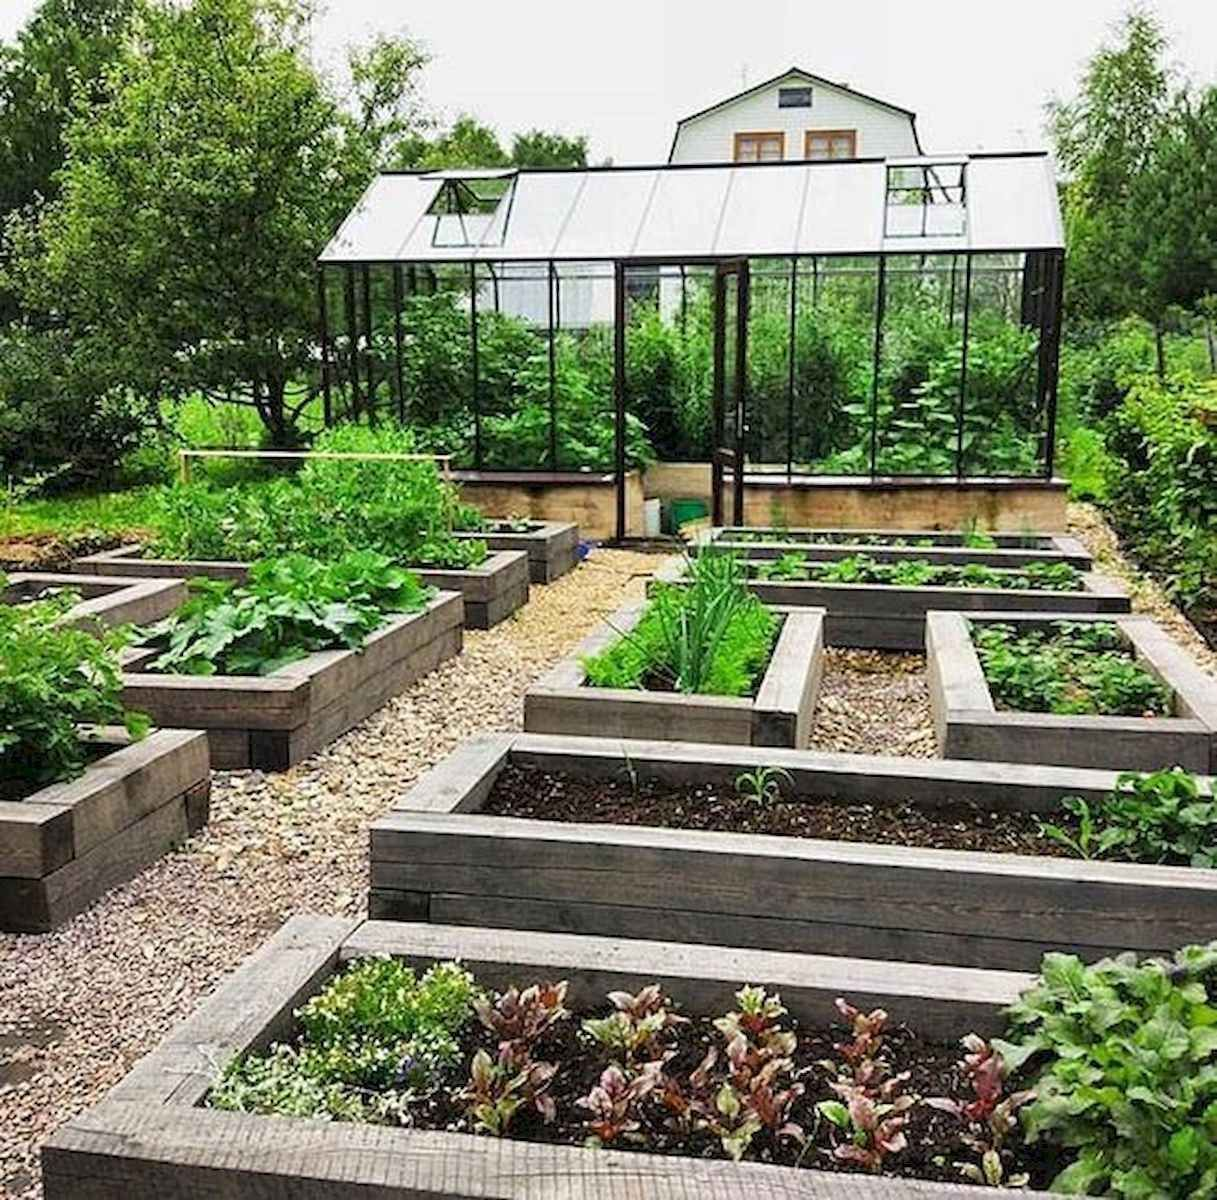 50 Best Garden Beds Design Ideas For Summer Gardendesign Foundation Plus Grass Mat Recolor Plus Plants In 2020 Garten Hochbeet Garten Hinterhof Garten